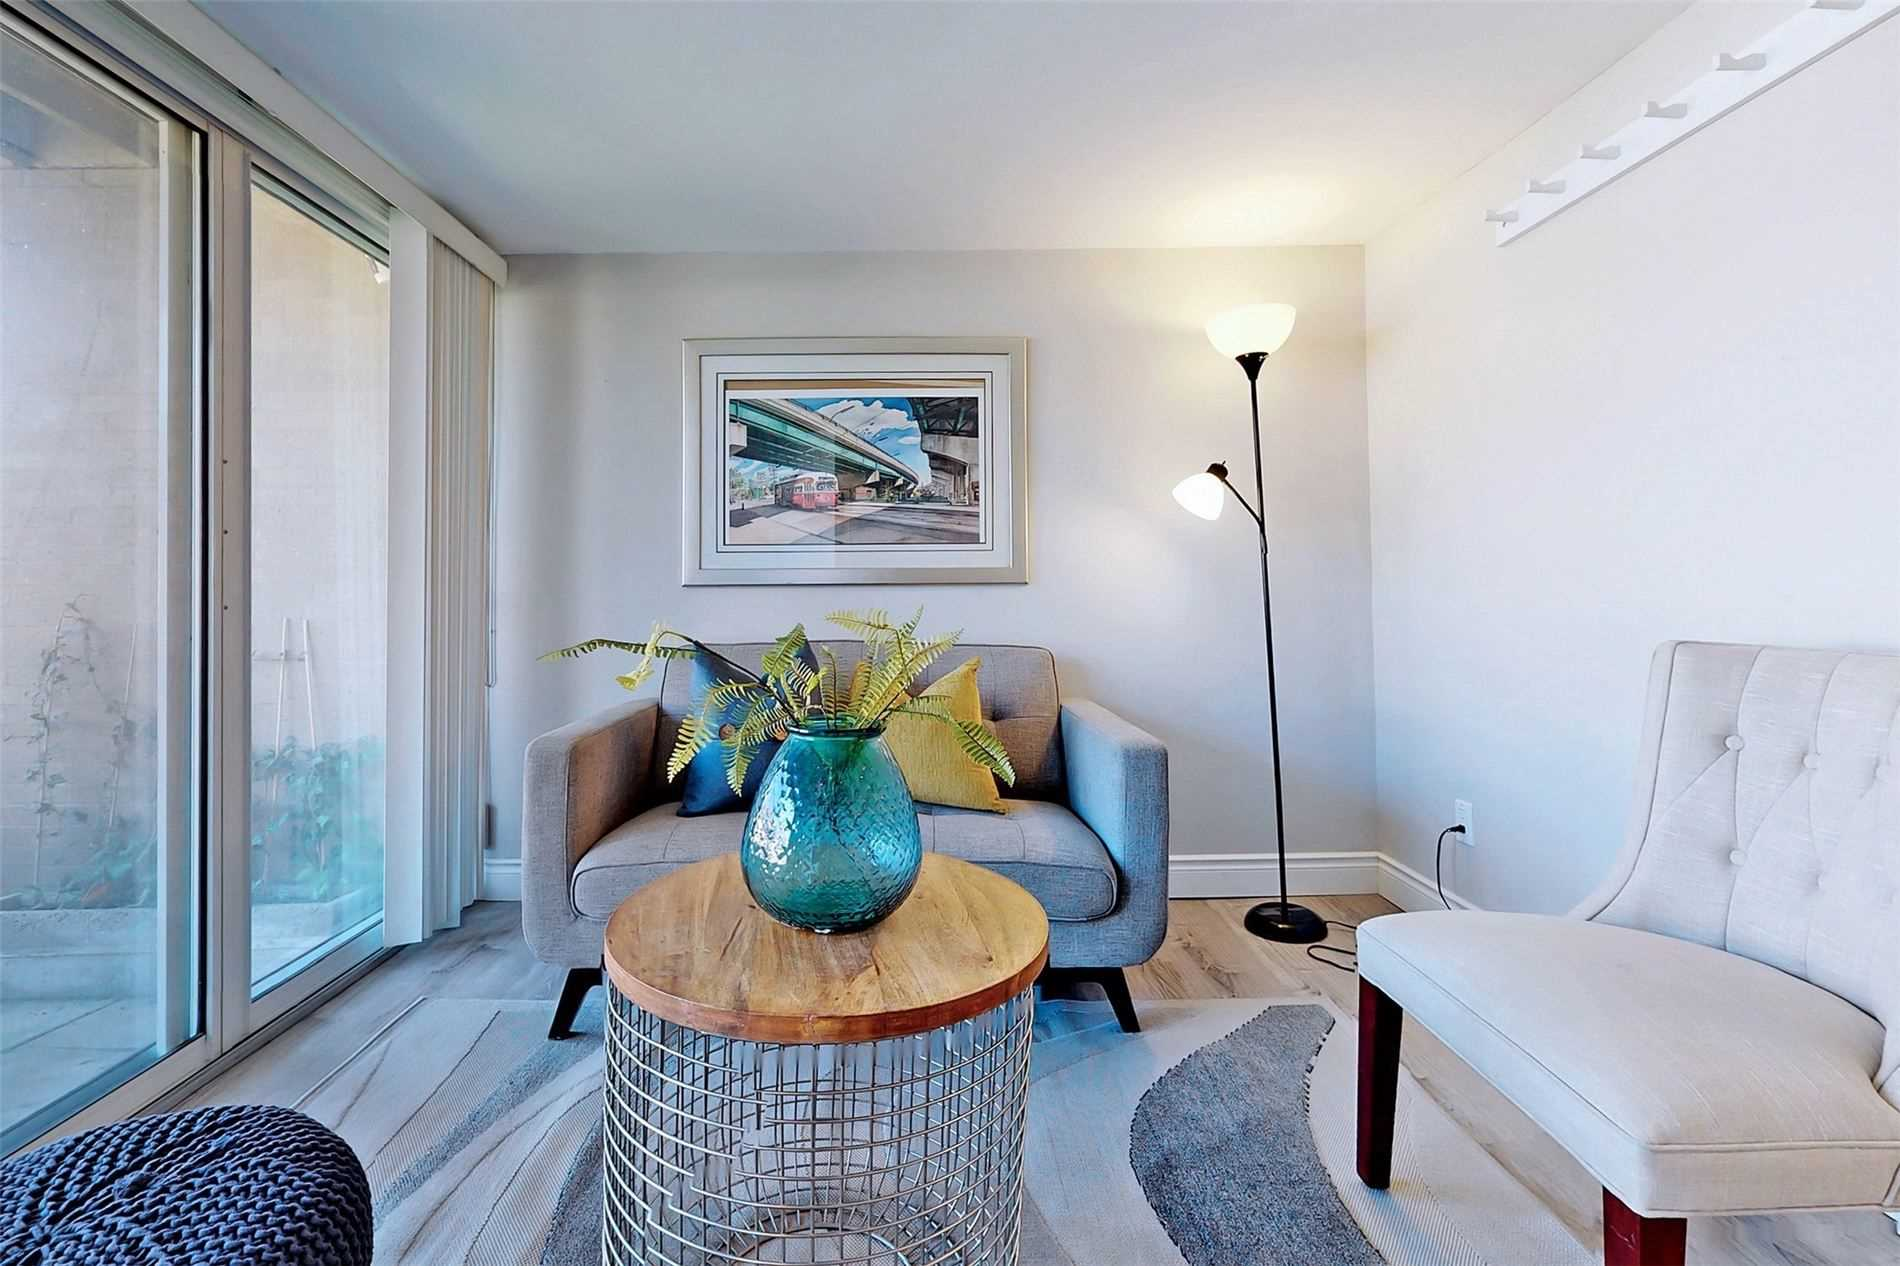 Image 37 of 40 showing inside of 3 Bedroom Condo Townhouse 3-Storey for Sale at 14 Cumberland Lane Unit# 7, Ajax L1S7K4